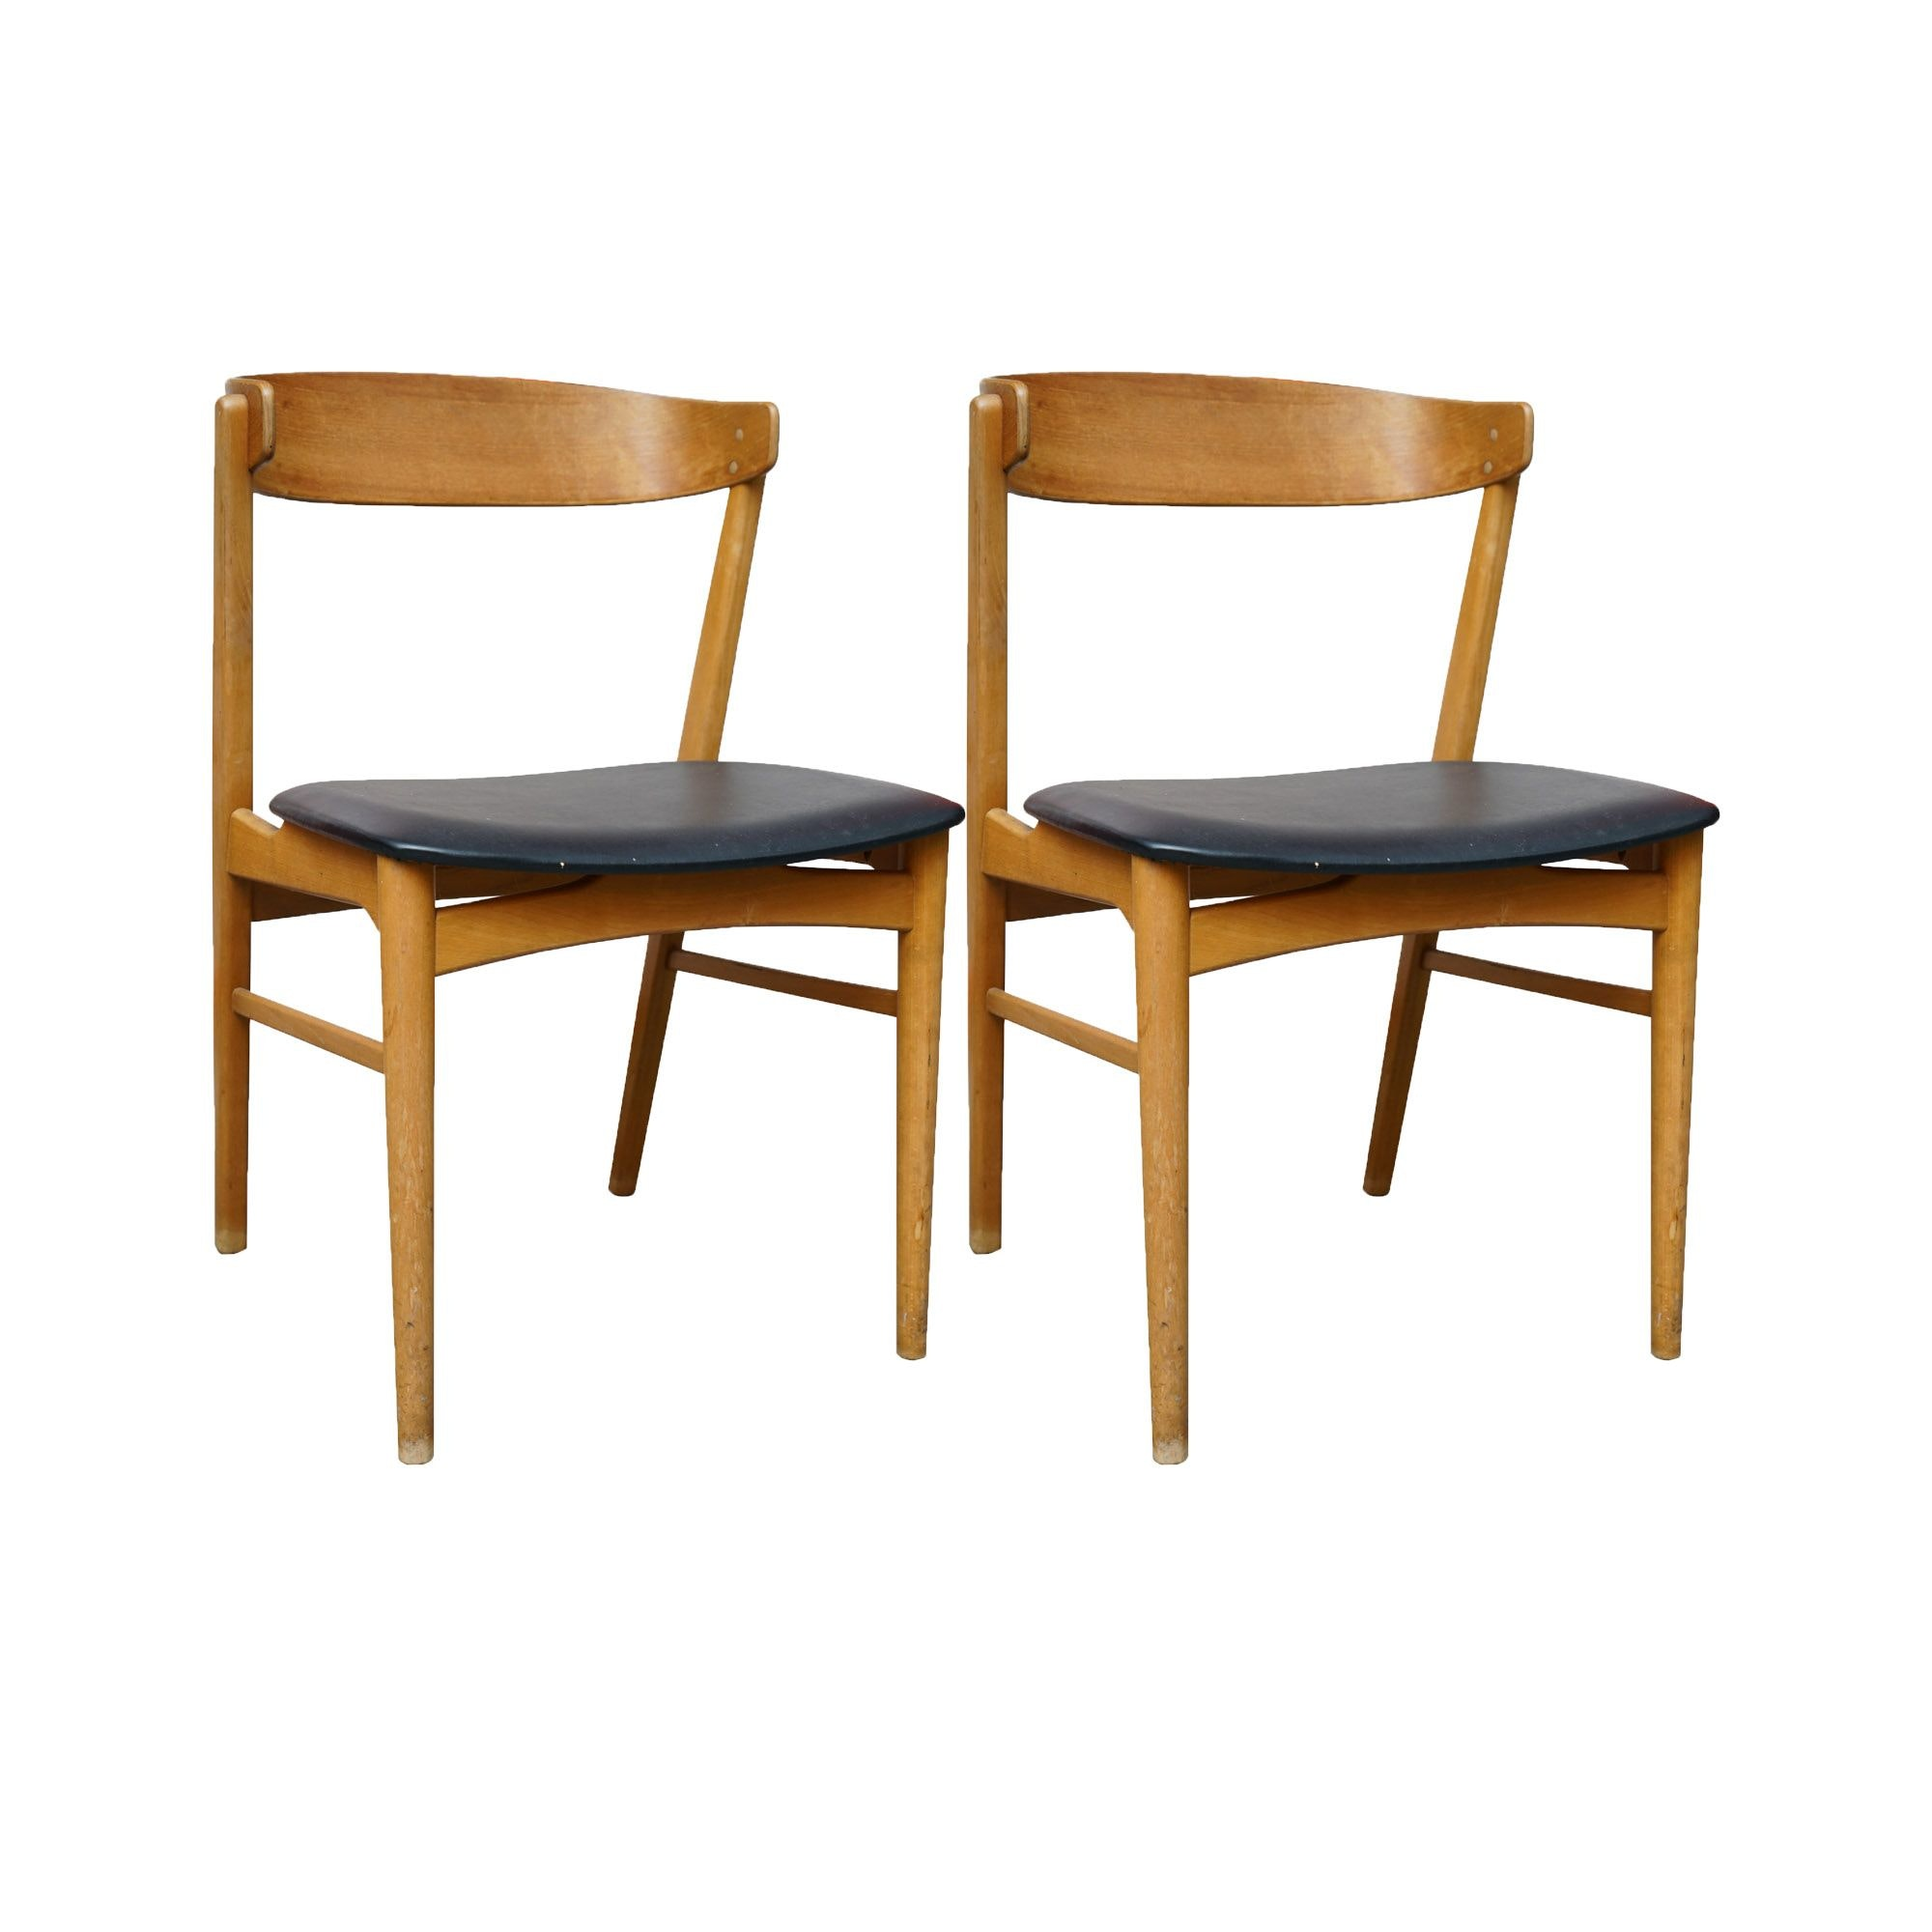 Danish Modern Style Curved Back Dining Chairs